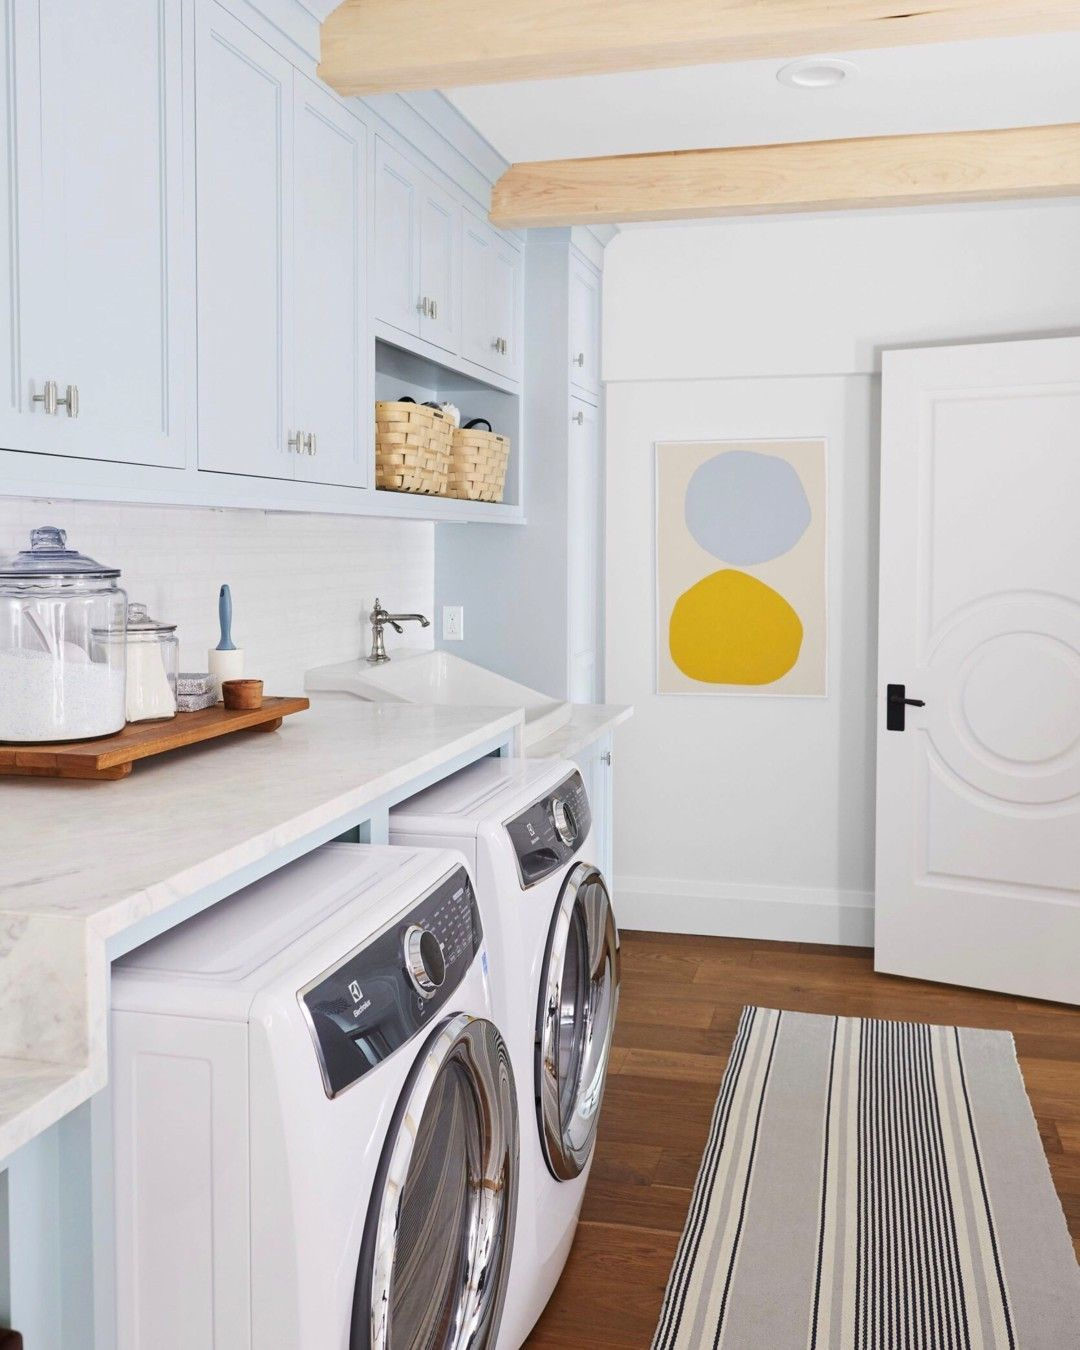 10x10 Laundry Room Layout: A Laundry Room That Makes Doing Laundry Fun! Image Via